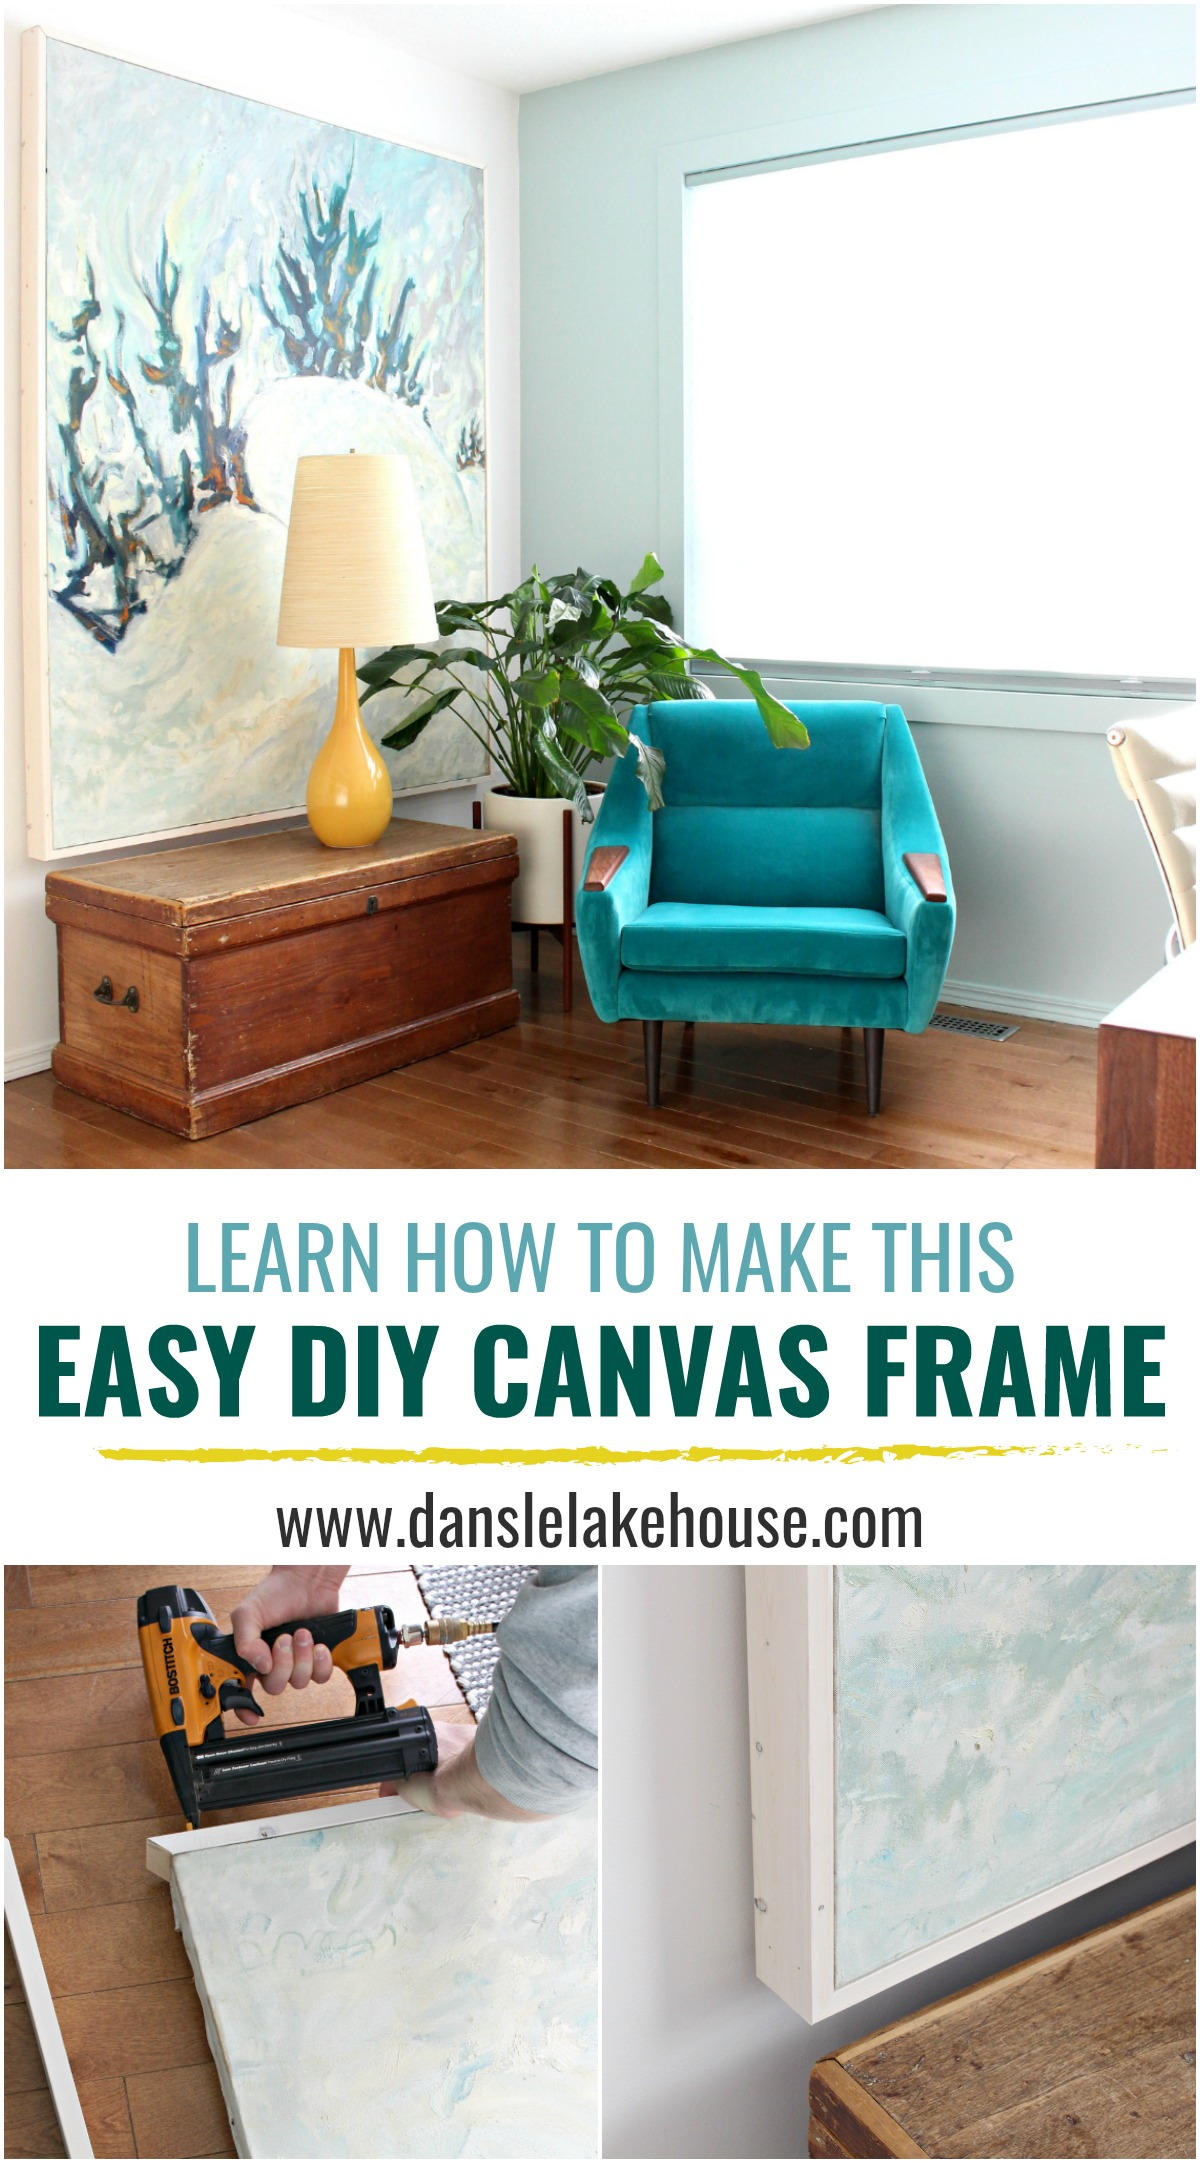 How to Frame Art for Cheap | Easy DIY Canvas Frame #woodworking #diy #diyframe #savemoney #budgethomedecor